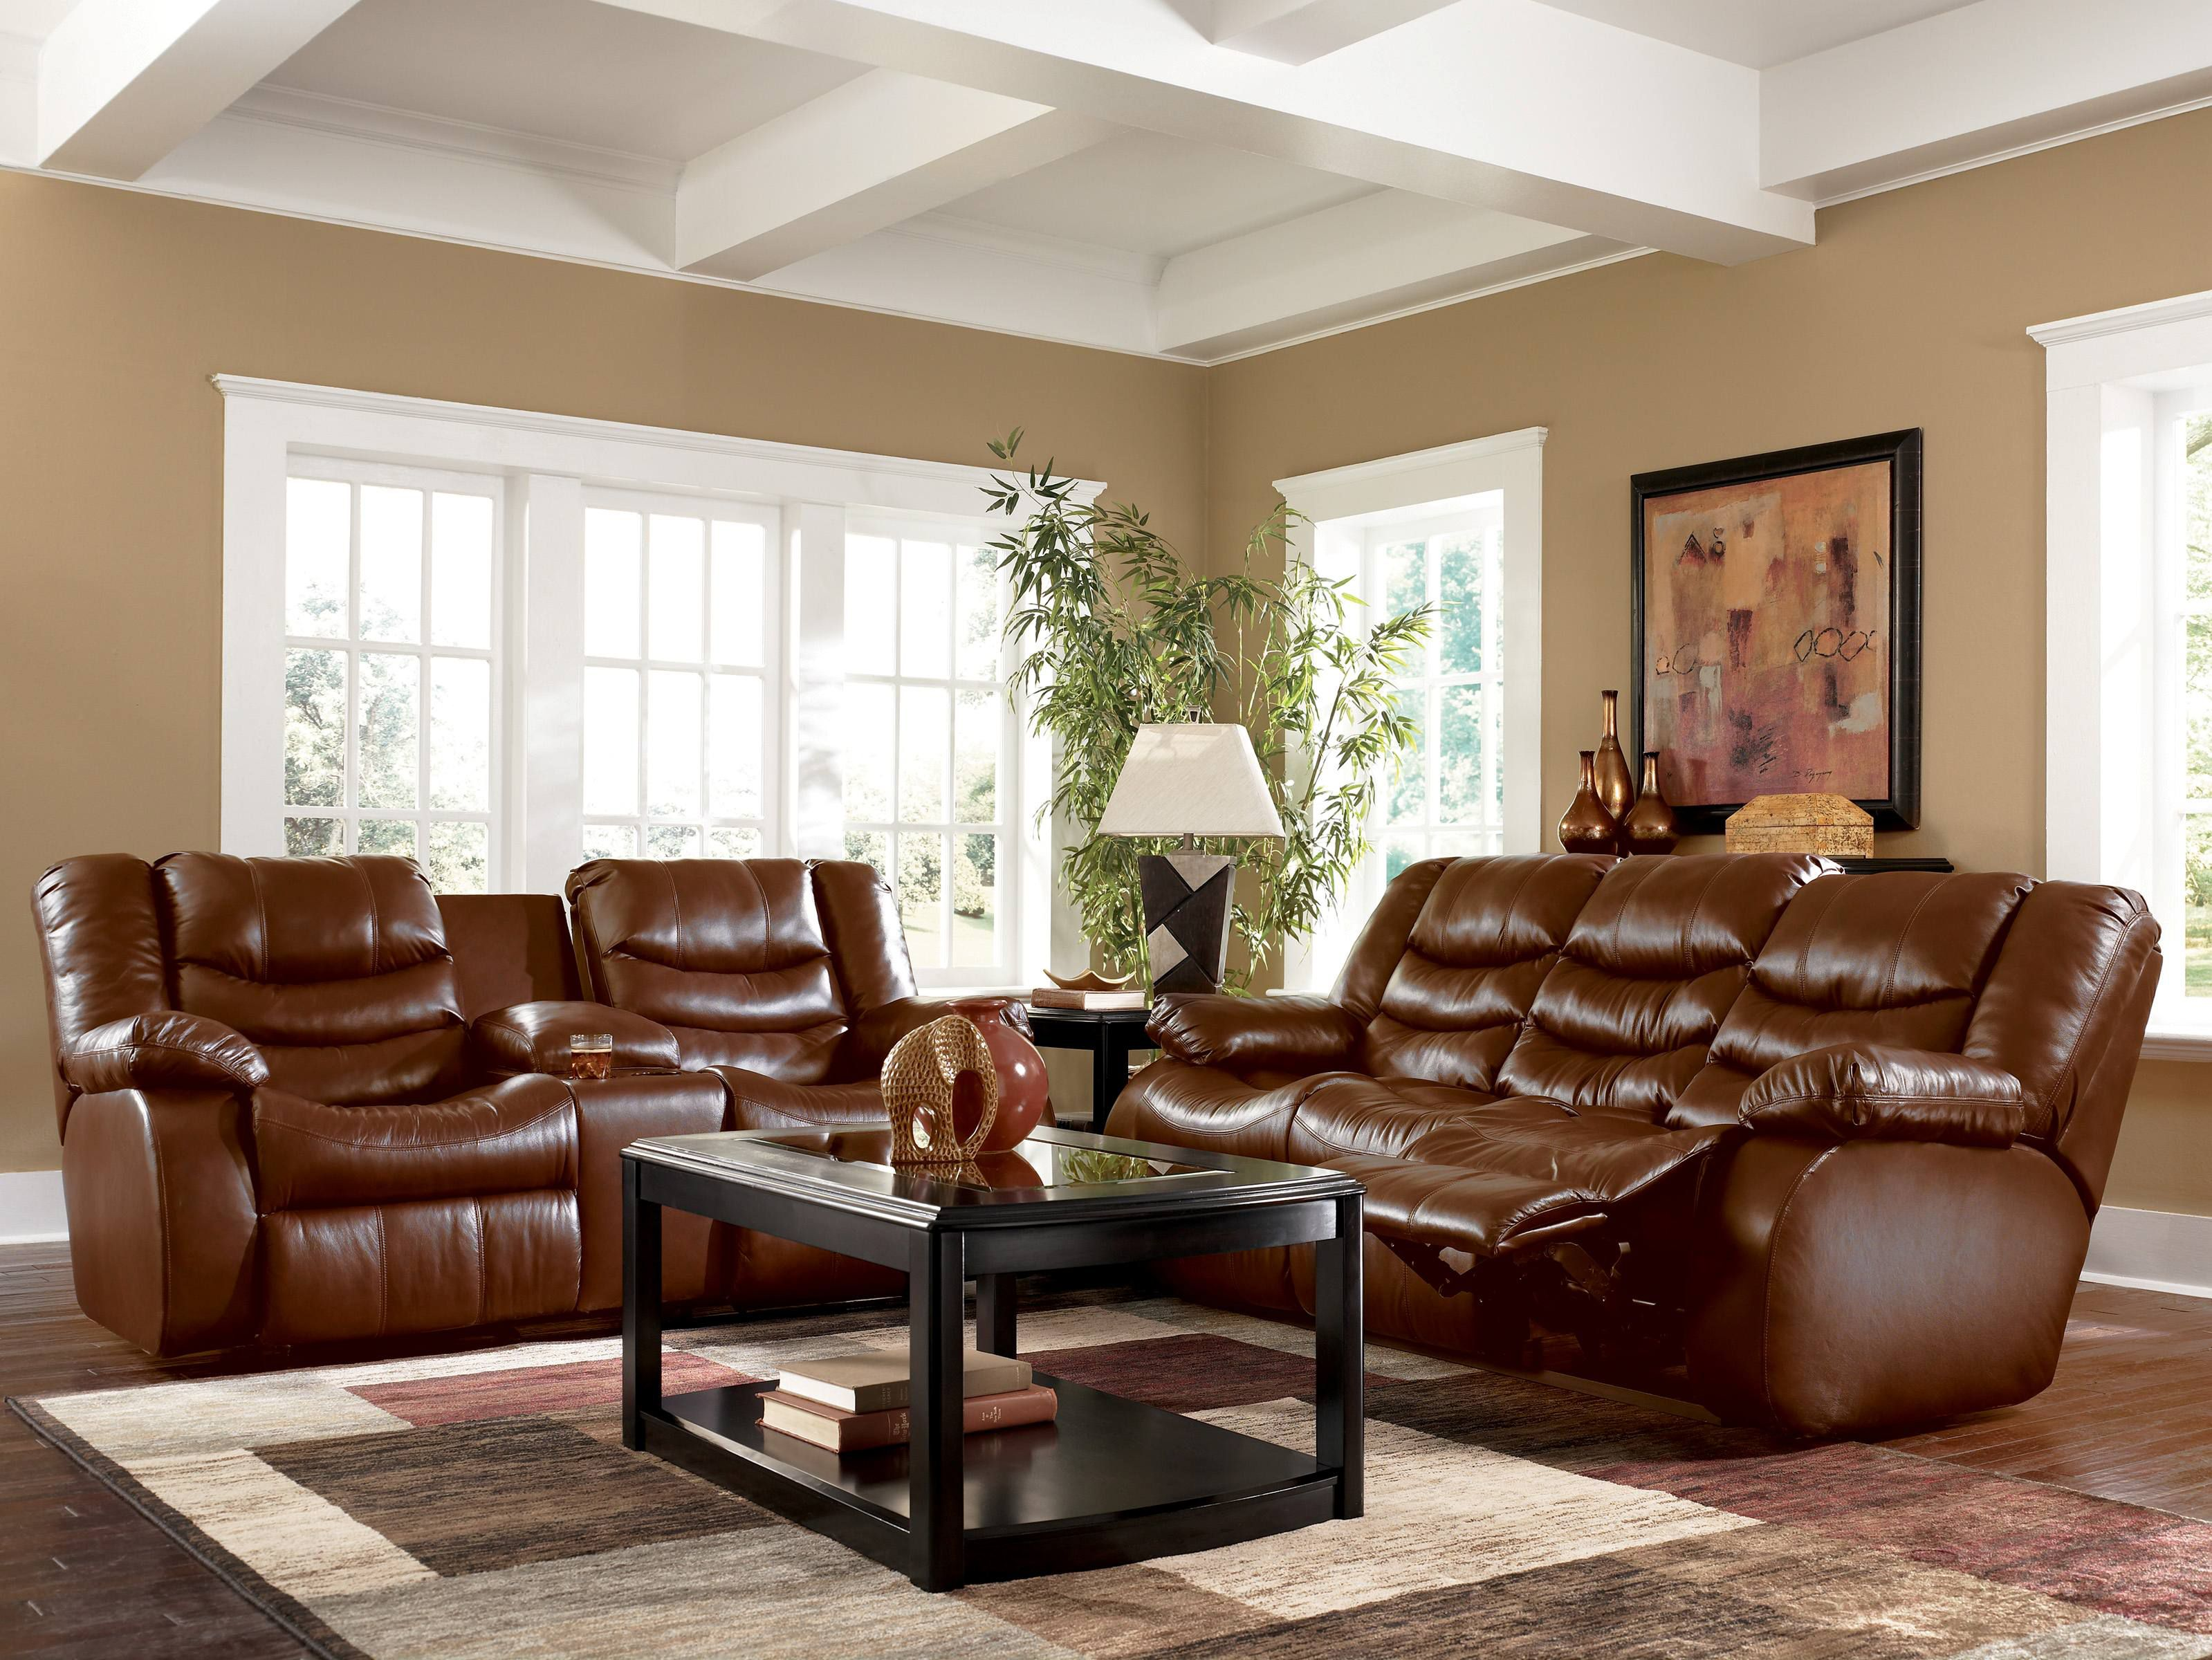 Living Room Furniture Decorating Ideas Modren Living Room Paint Ideas With Brown Furniture Decorations Decor